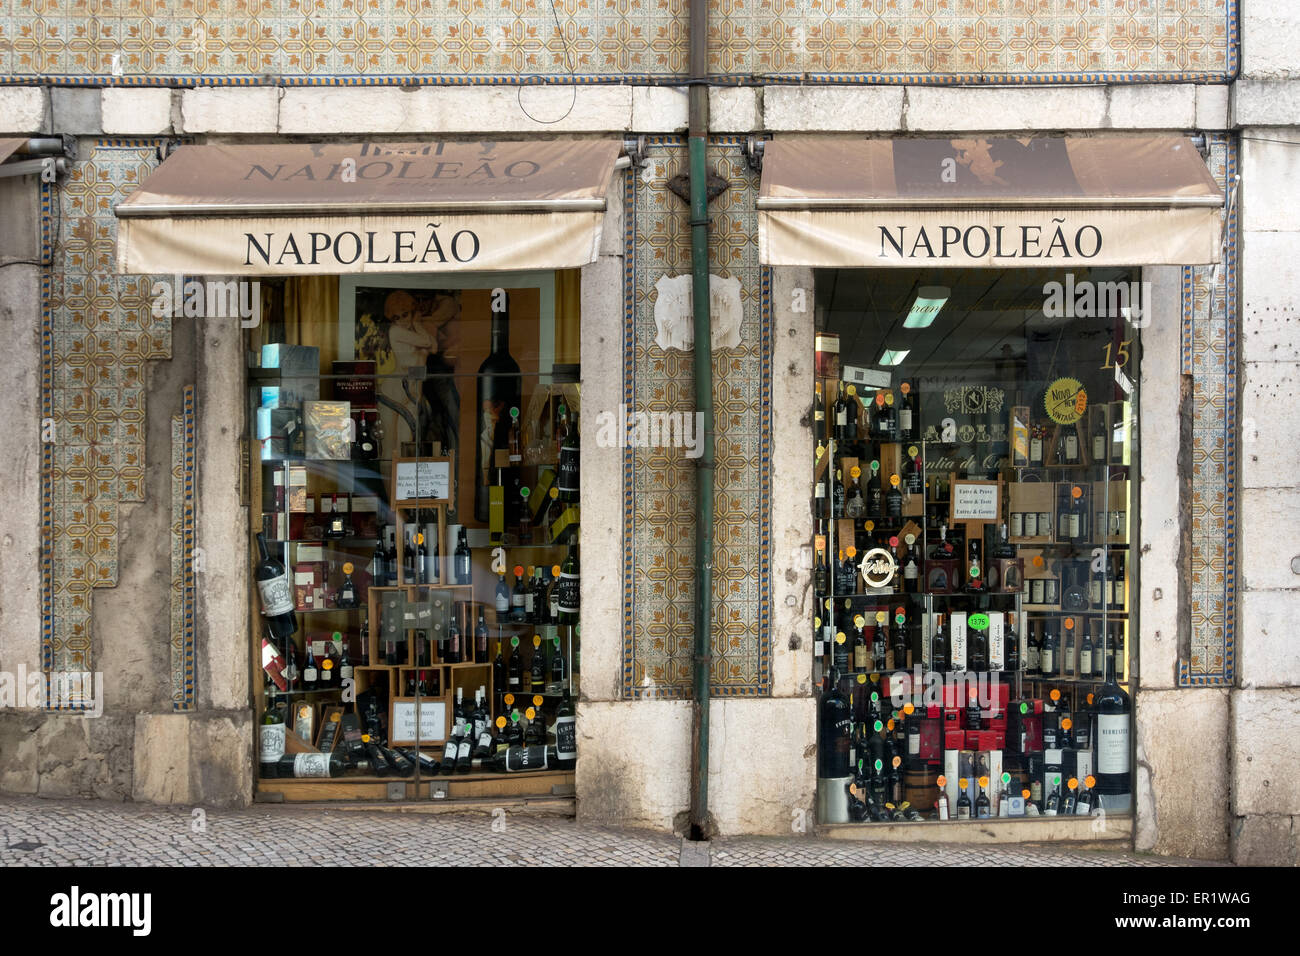 Port Shop Stock Photos & Port Shop Stock Images - Alamy